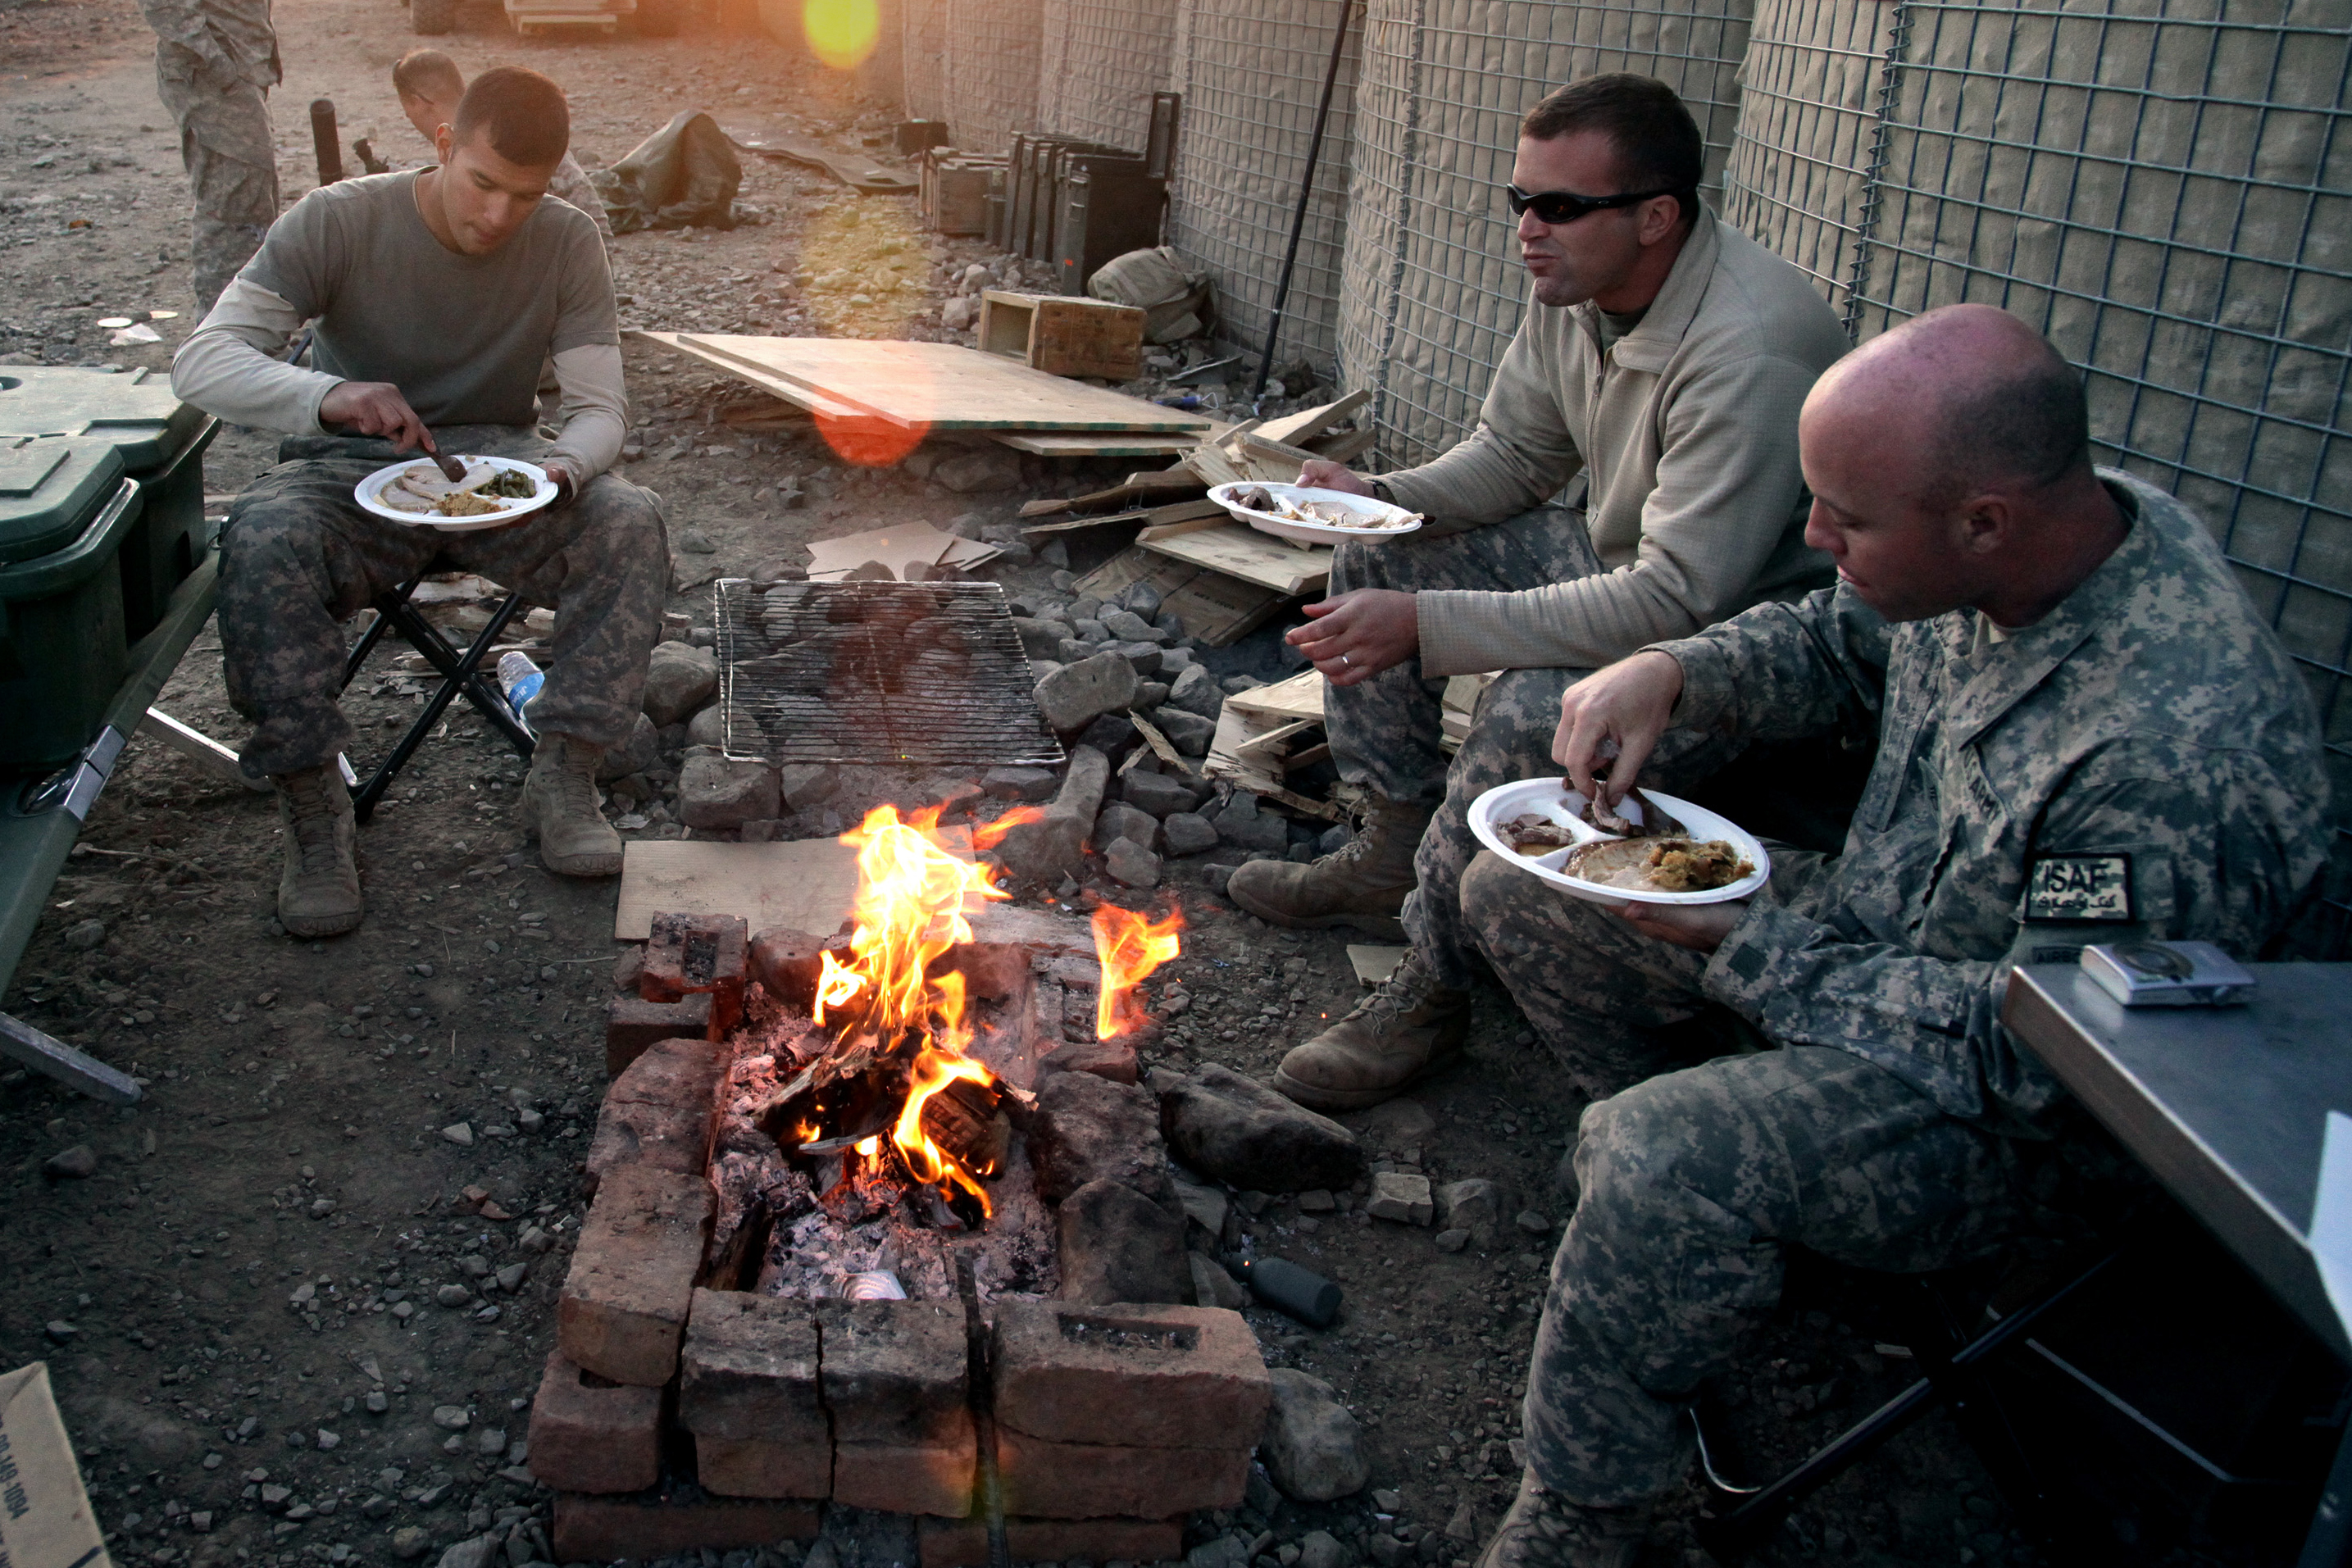 http://upload.wikimedia.org/wikipedia/commons/f/f0/Flickr_-_The_U.S._Army_-_Thanksgiving_on_Combat_Outpost_Cherkatah,_Khowst_province,_Afghanistan.jpg